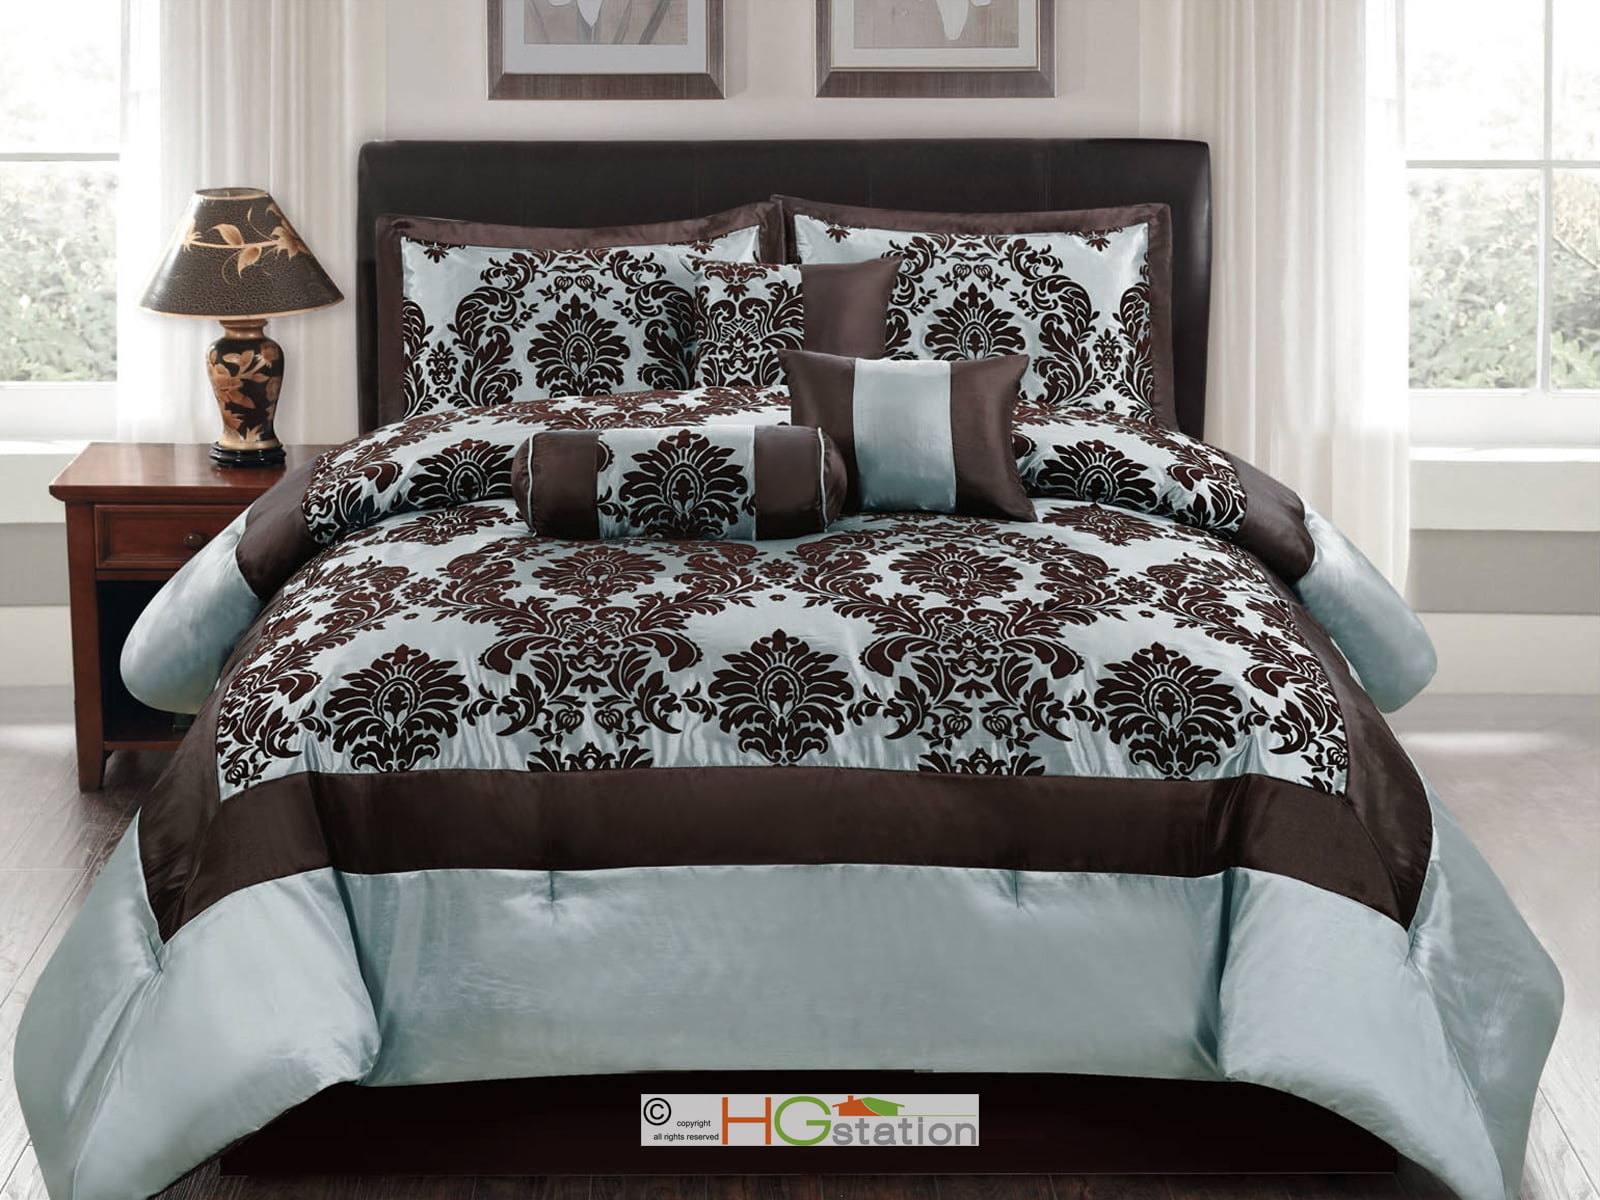 7Pc Silky PolySatin Flocking Damask Floral Square Comforter Set